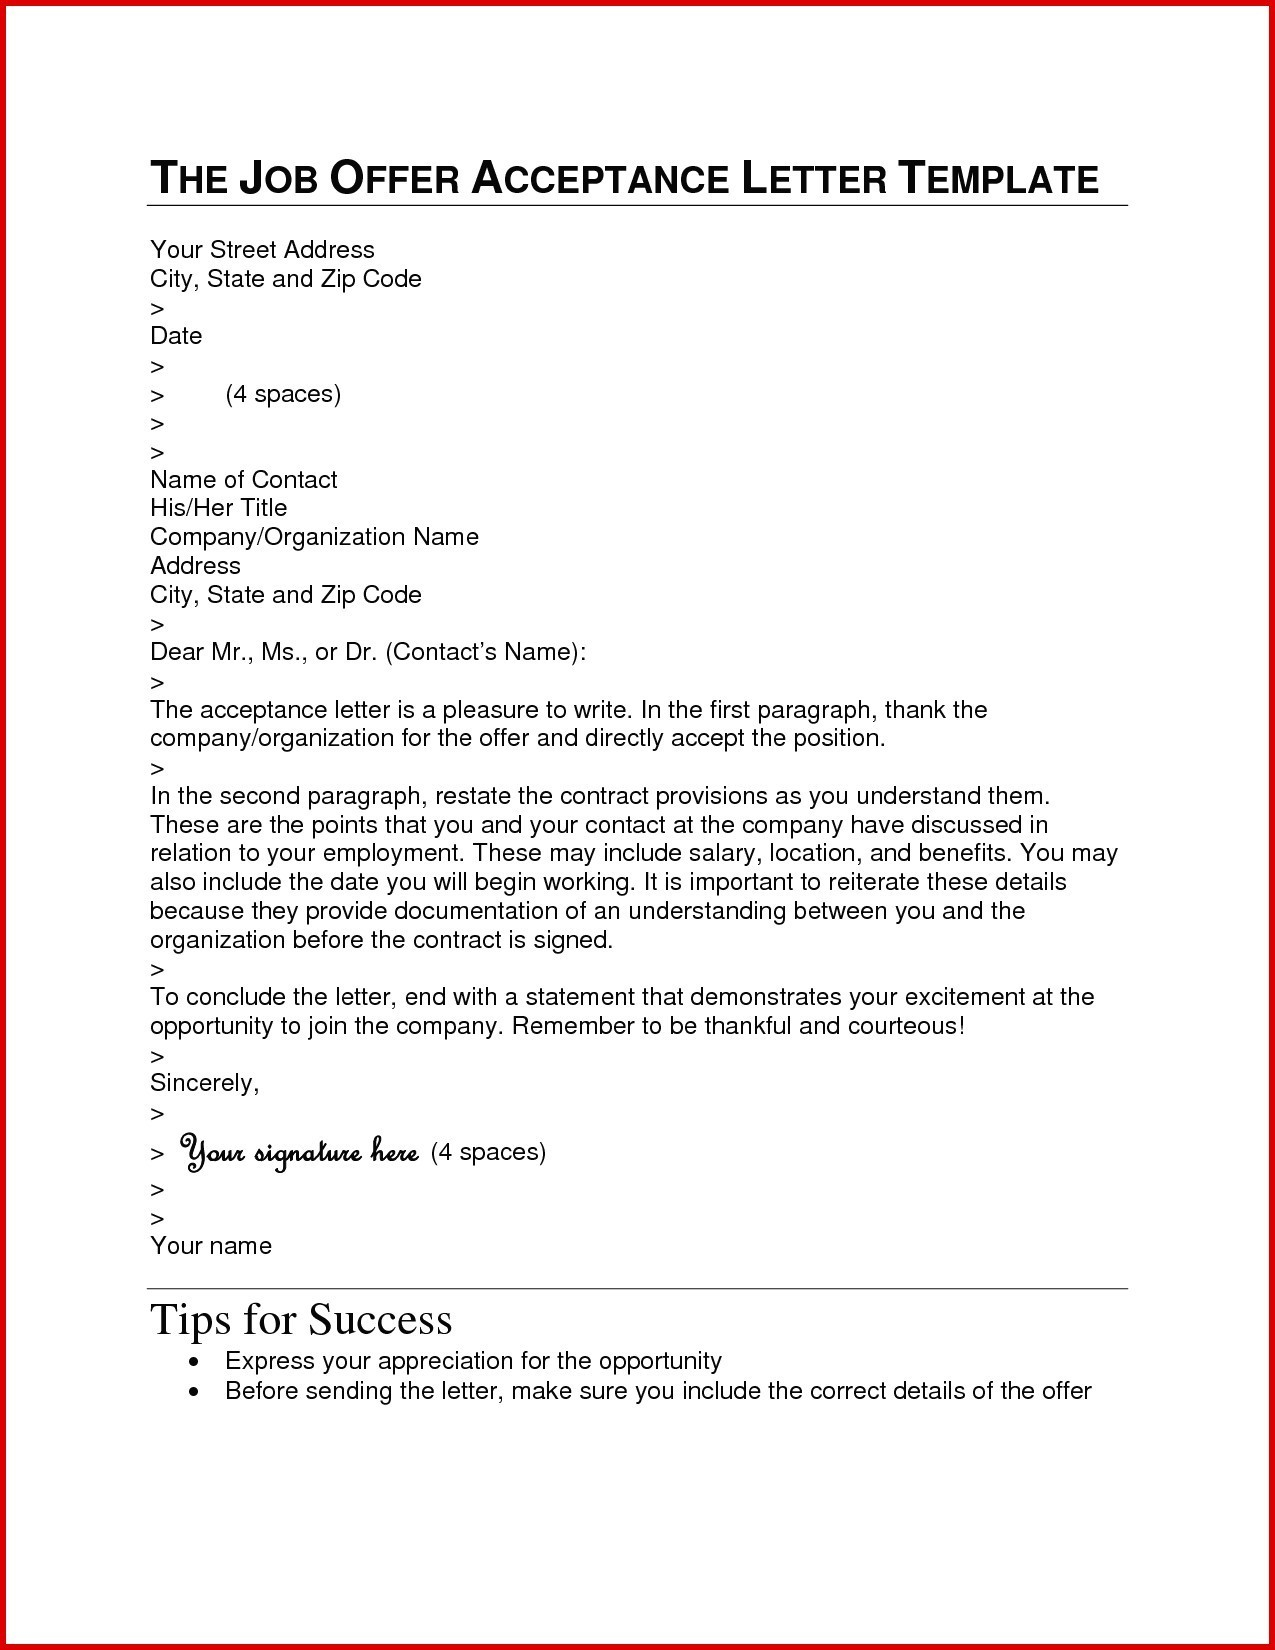 Job Offer Acceptance Letter Template - Cpt Job Fer Letter Sample Fresh Sample Resignation Letter Template